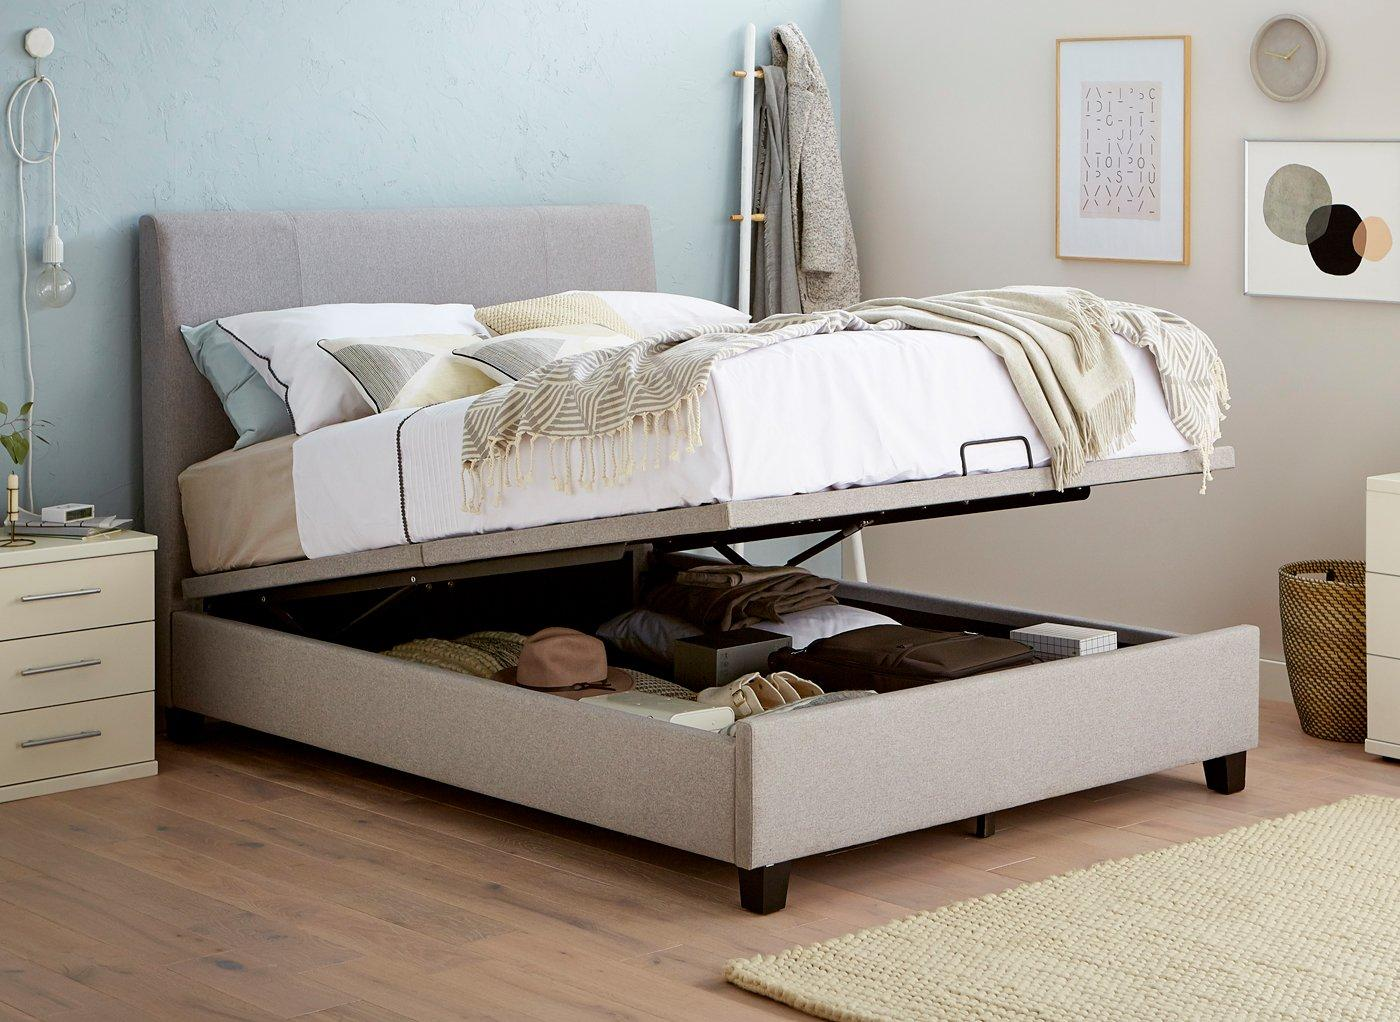 Francis Grey Fabric Ottoman Bed Frame 5'0 King